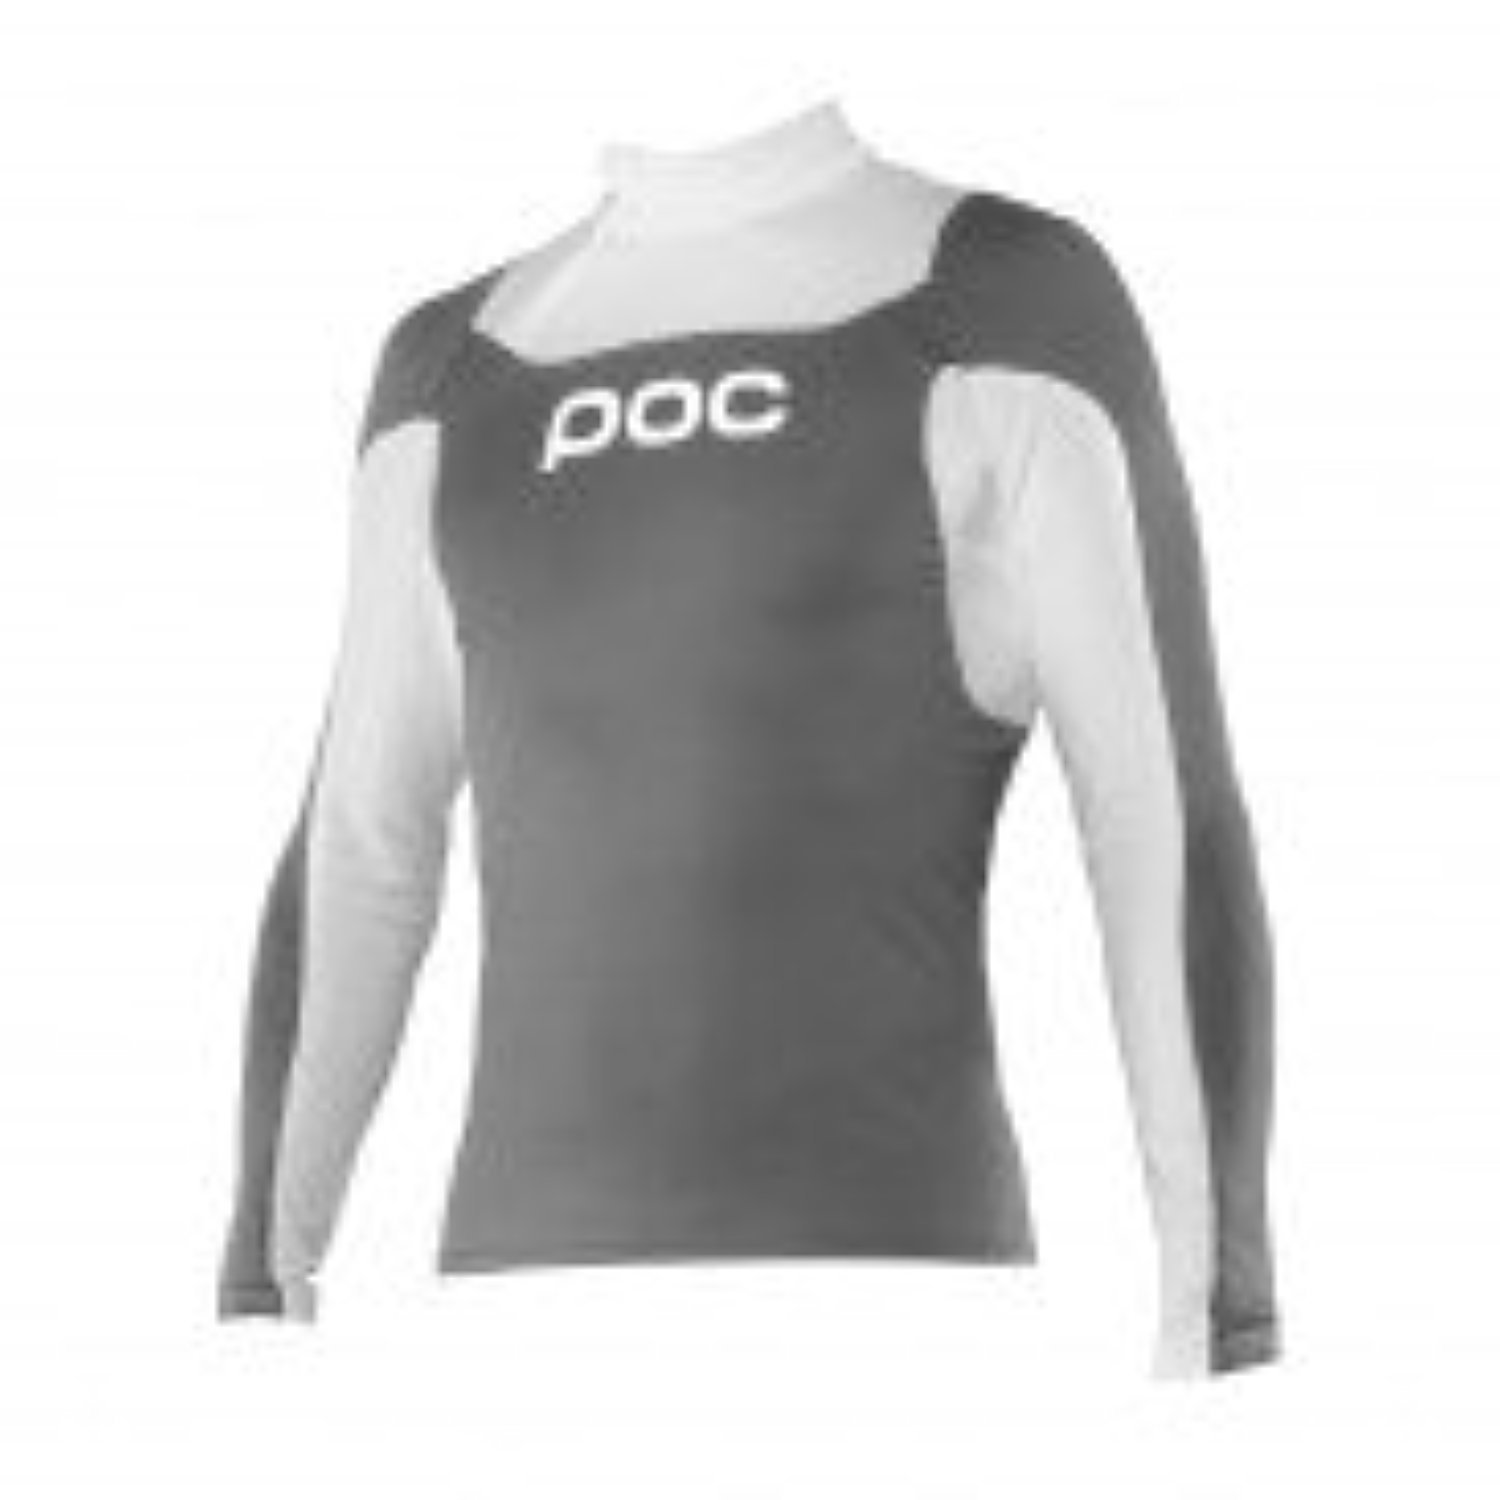 poc poc Layer Jr Cut Suit Top Steel Grey/Hydrogen White 12Y & Headband Bundle by POC